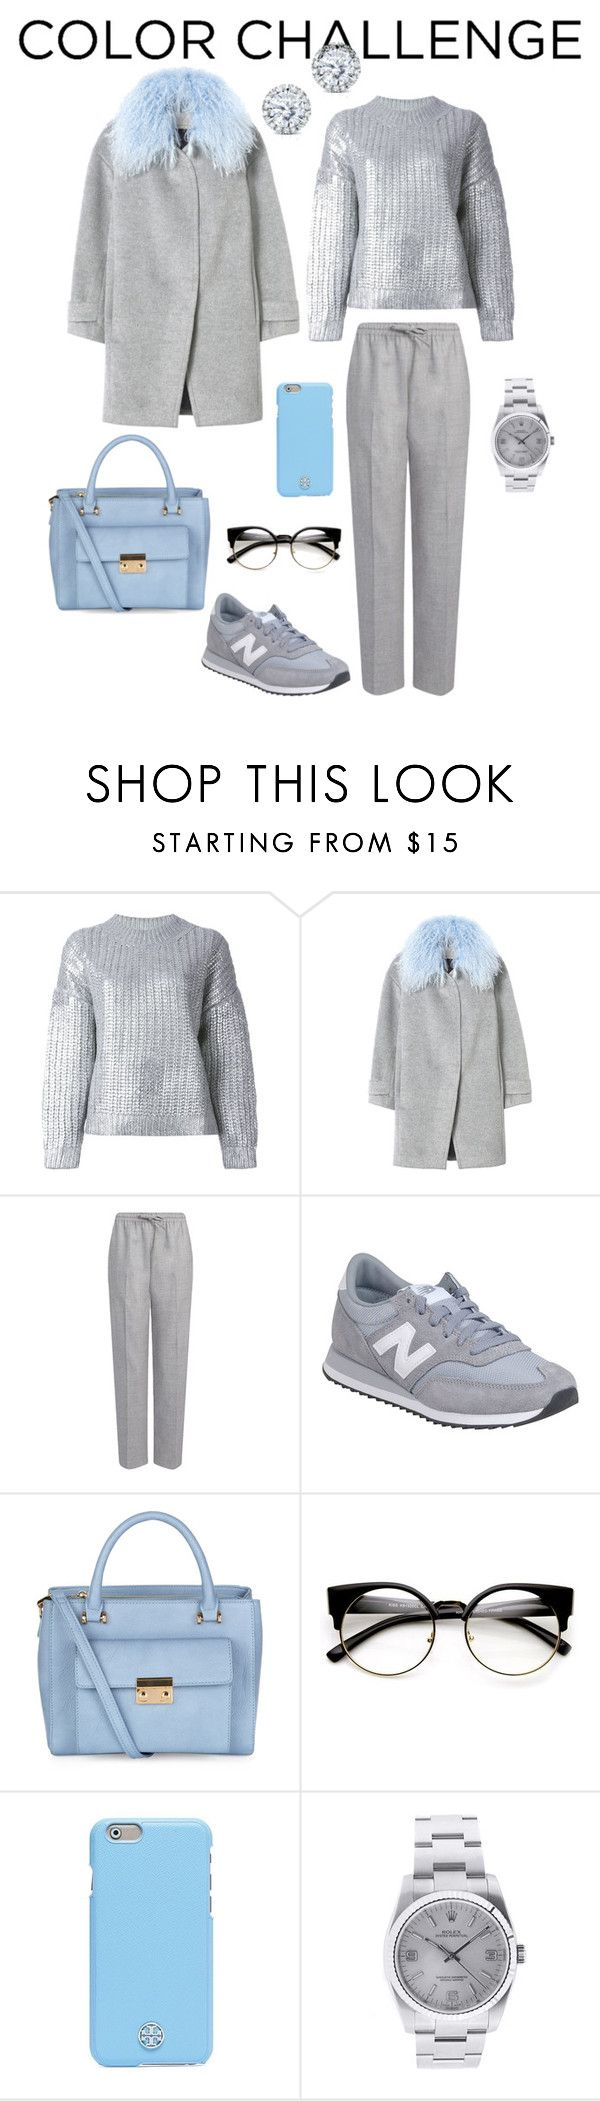 """Спорт-шик"" by galaktica ❤ liked on Polyvore featuring moda, DKNY, Rebecca Taylor, Joseph, New Balance, Accessorize, Tory Burch, Rolex y Kobelli"